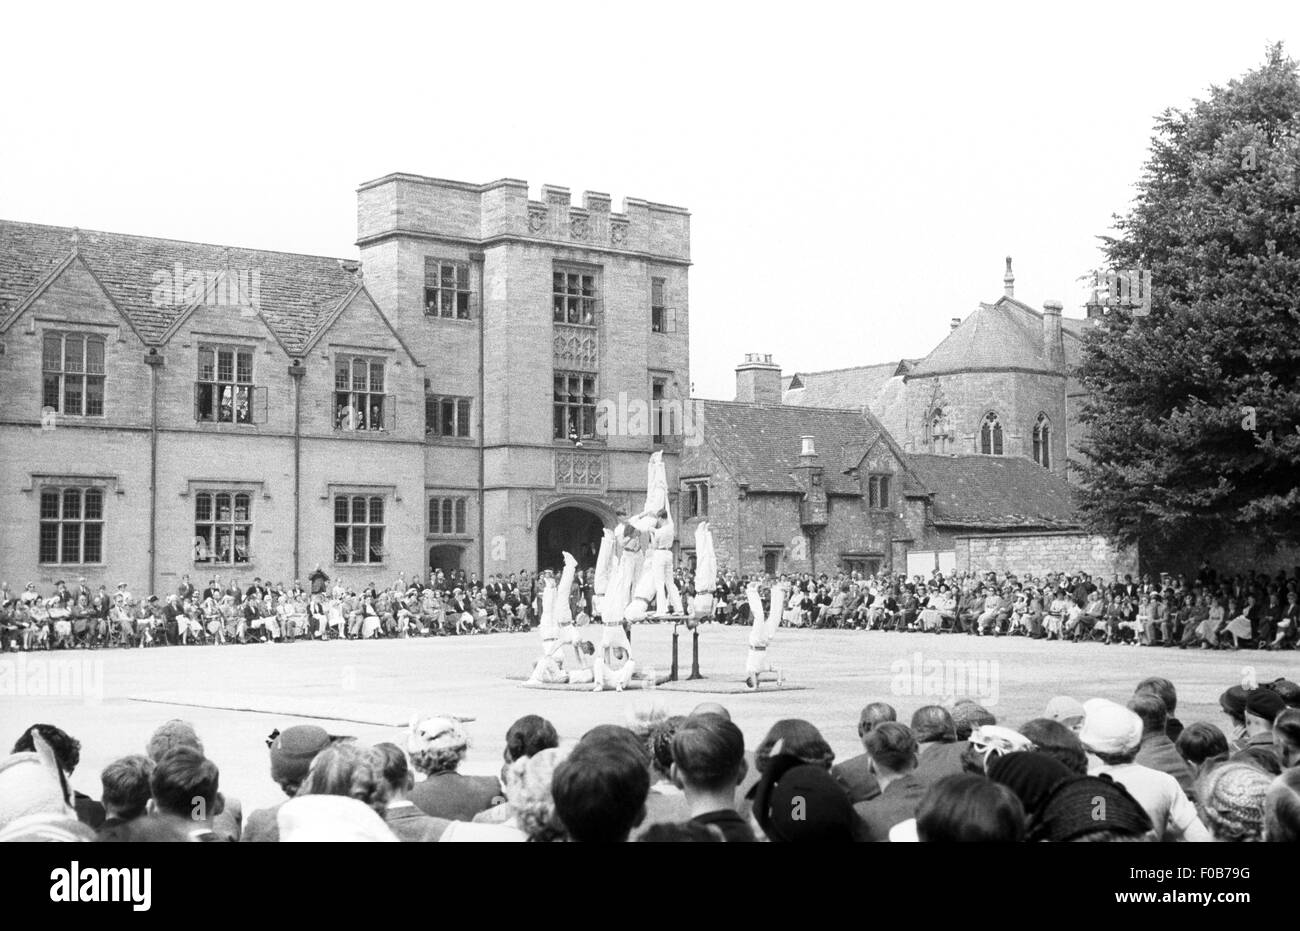 A group of men doing a gymnastic display watched by a large audience in a square outside a manor house. - Stock Image